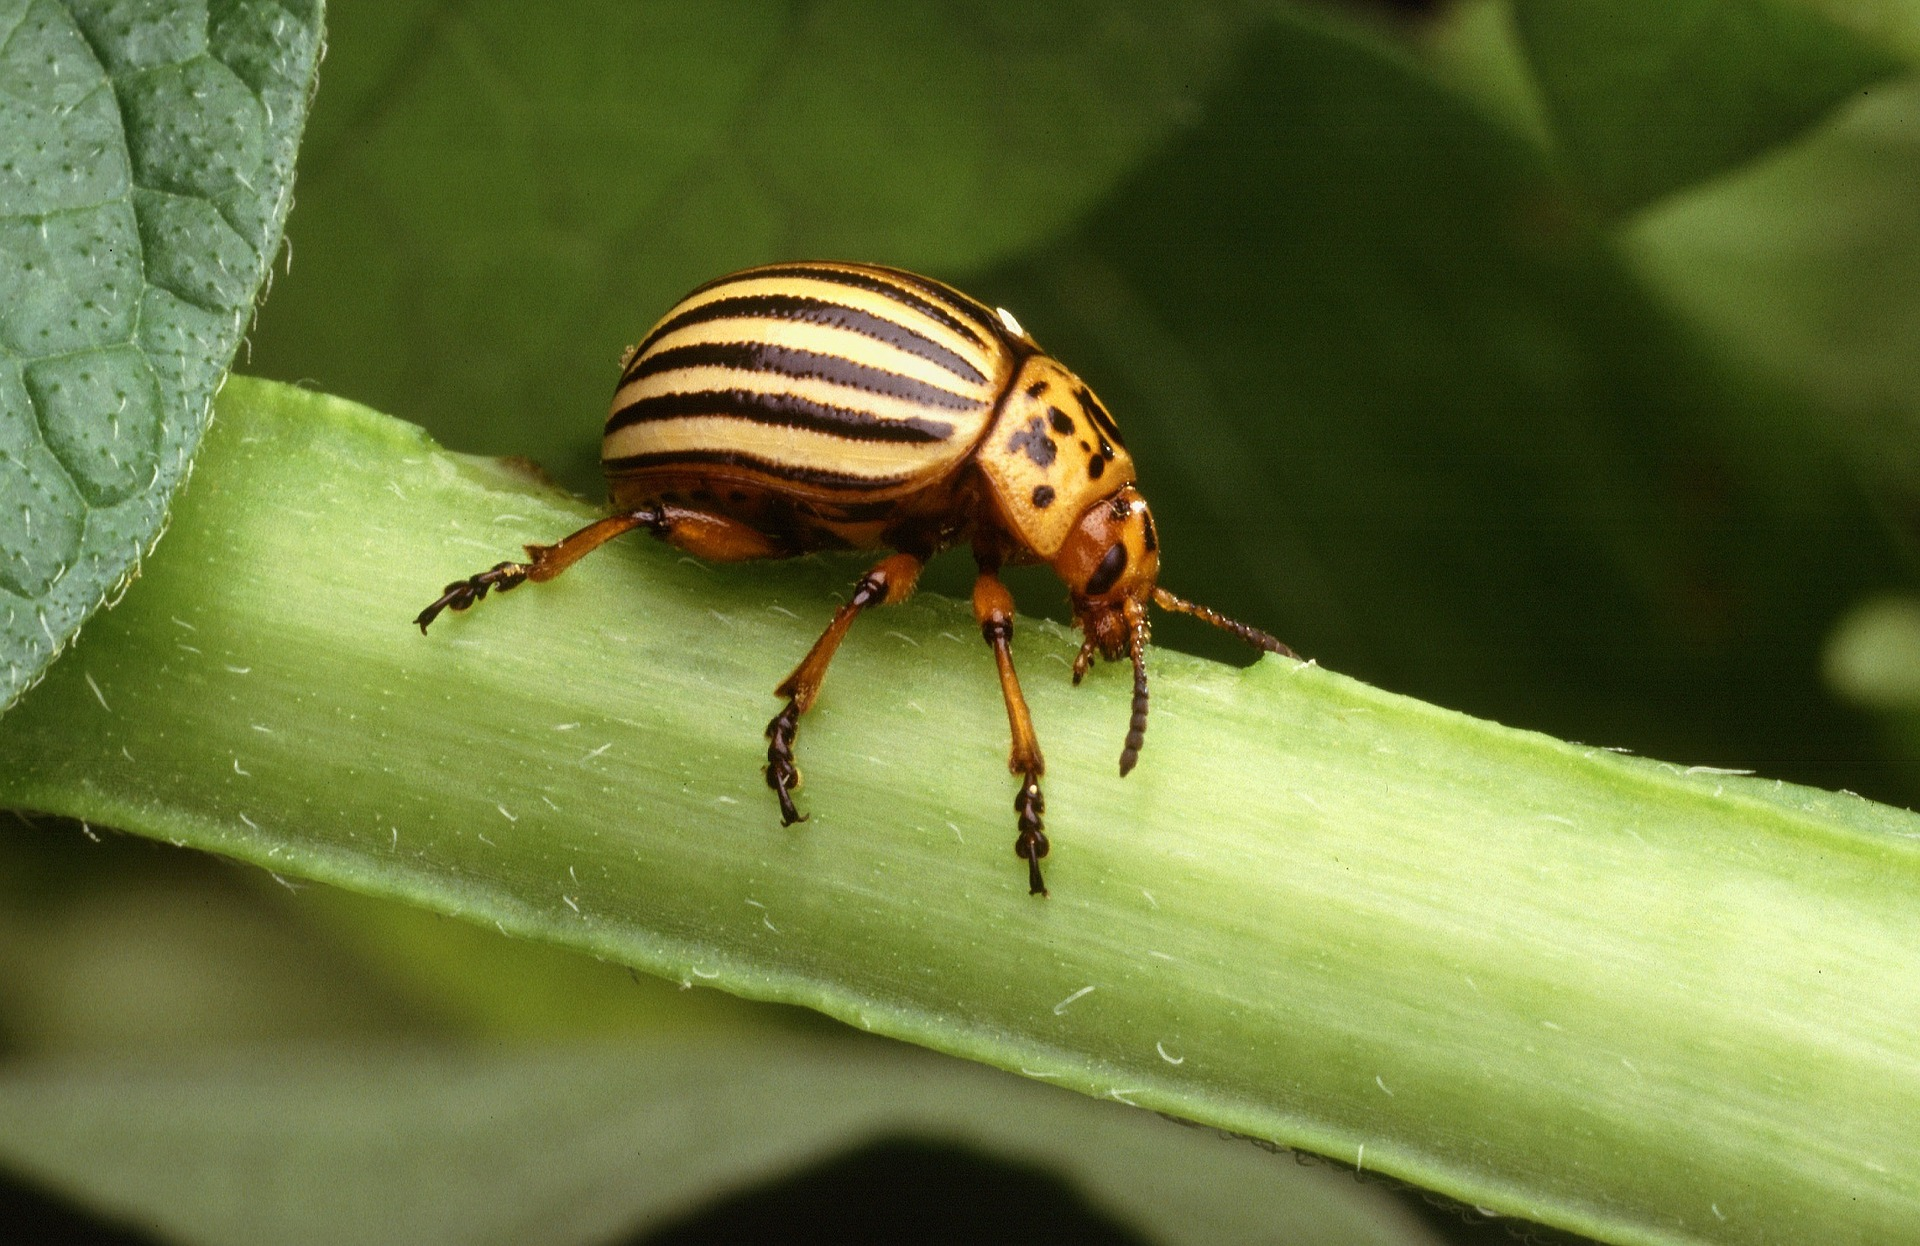 colorado-potato-beetle-1803237_1920